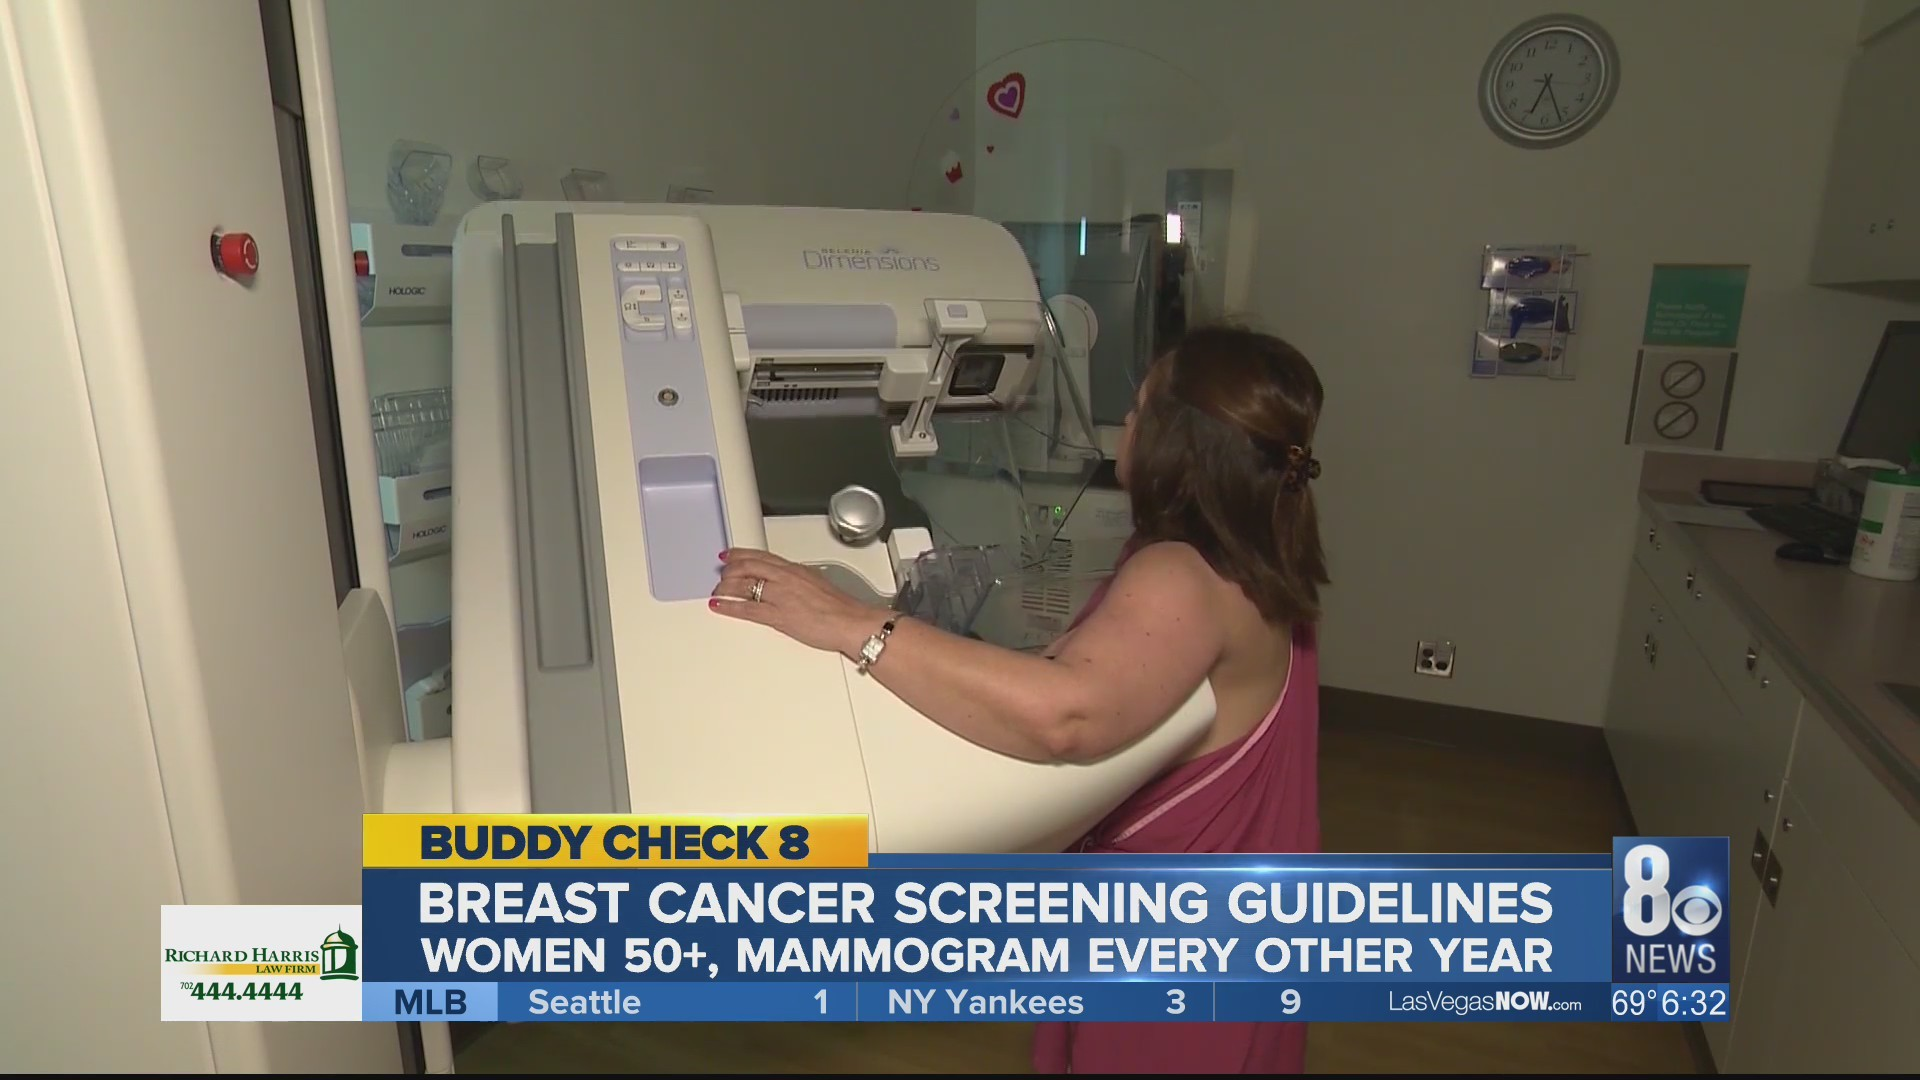 The debate continues over breast cancer screening guidelines